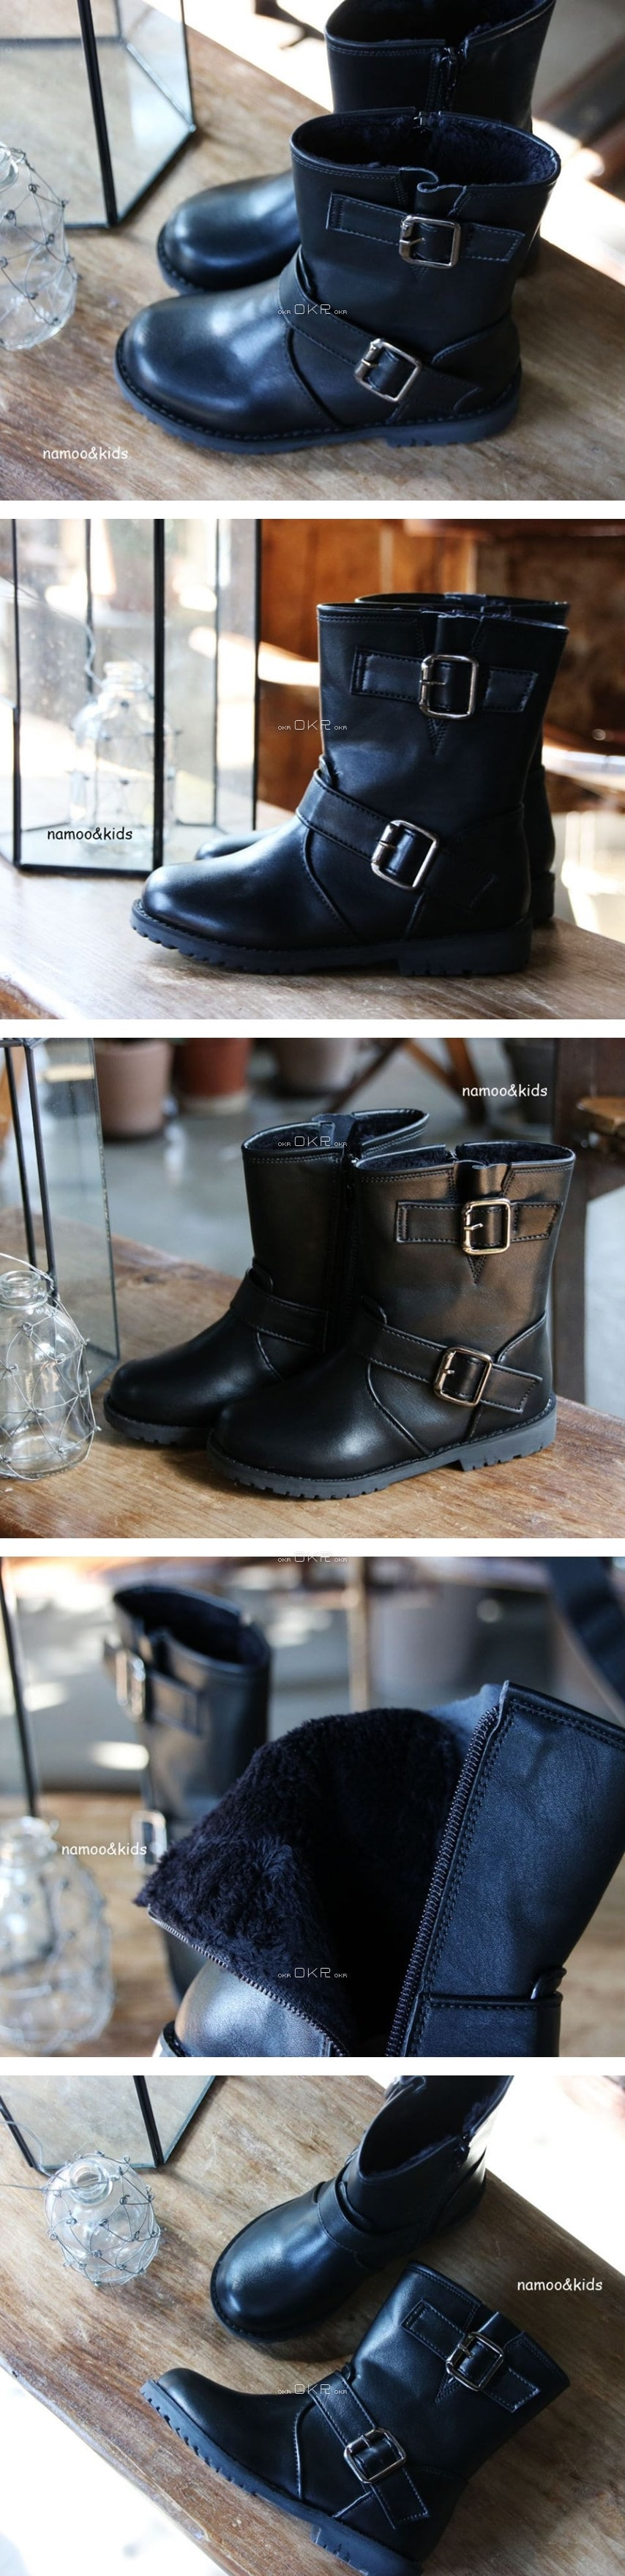 NAMOO & KIDS - Korean Children Fashion - #Kfashion4kids - Lyle Roosebelt Boots